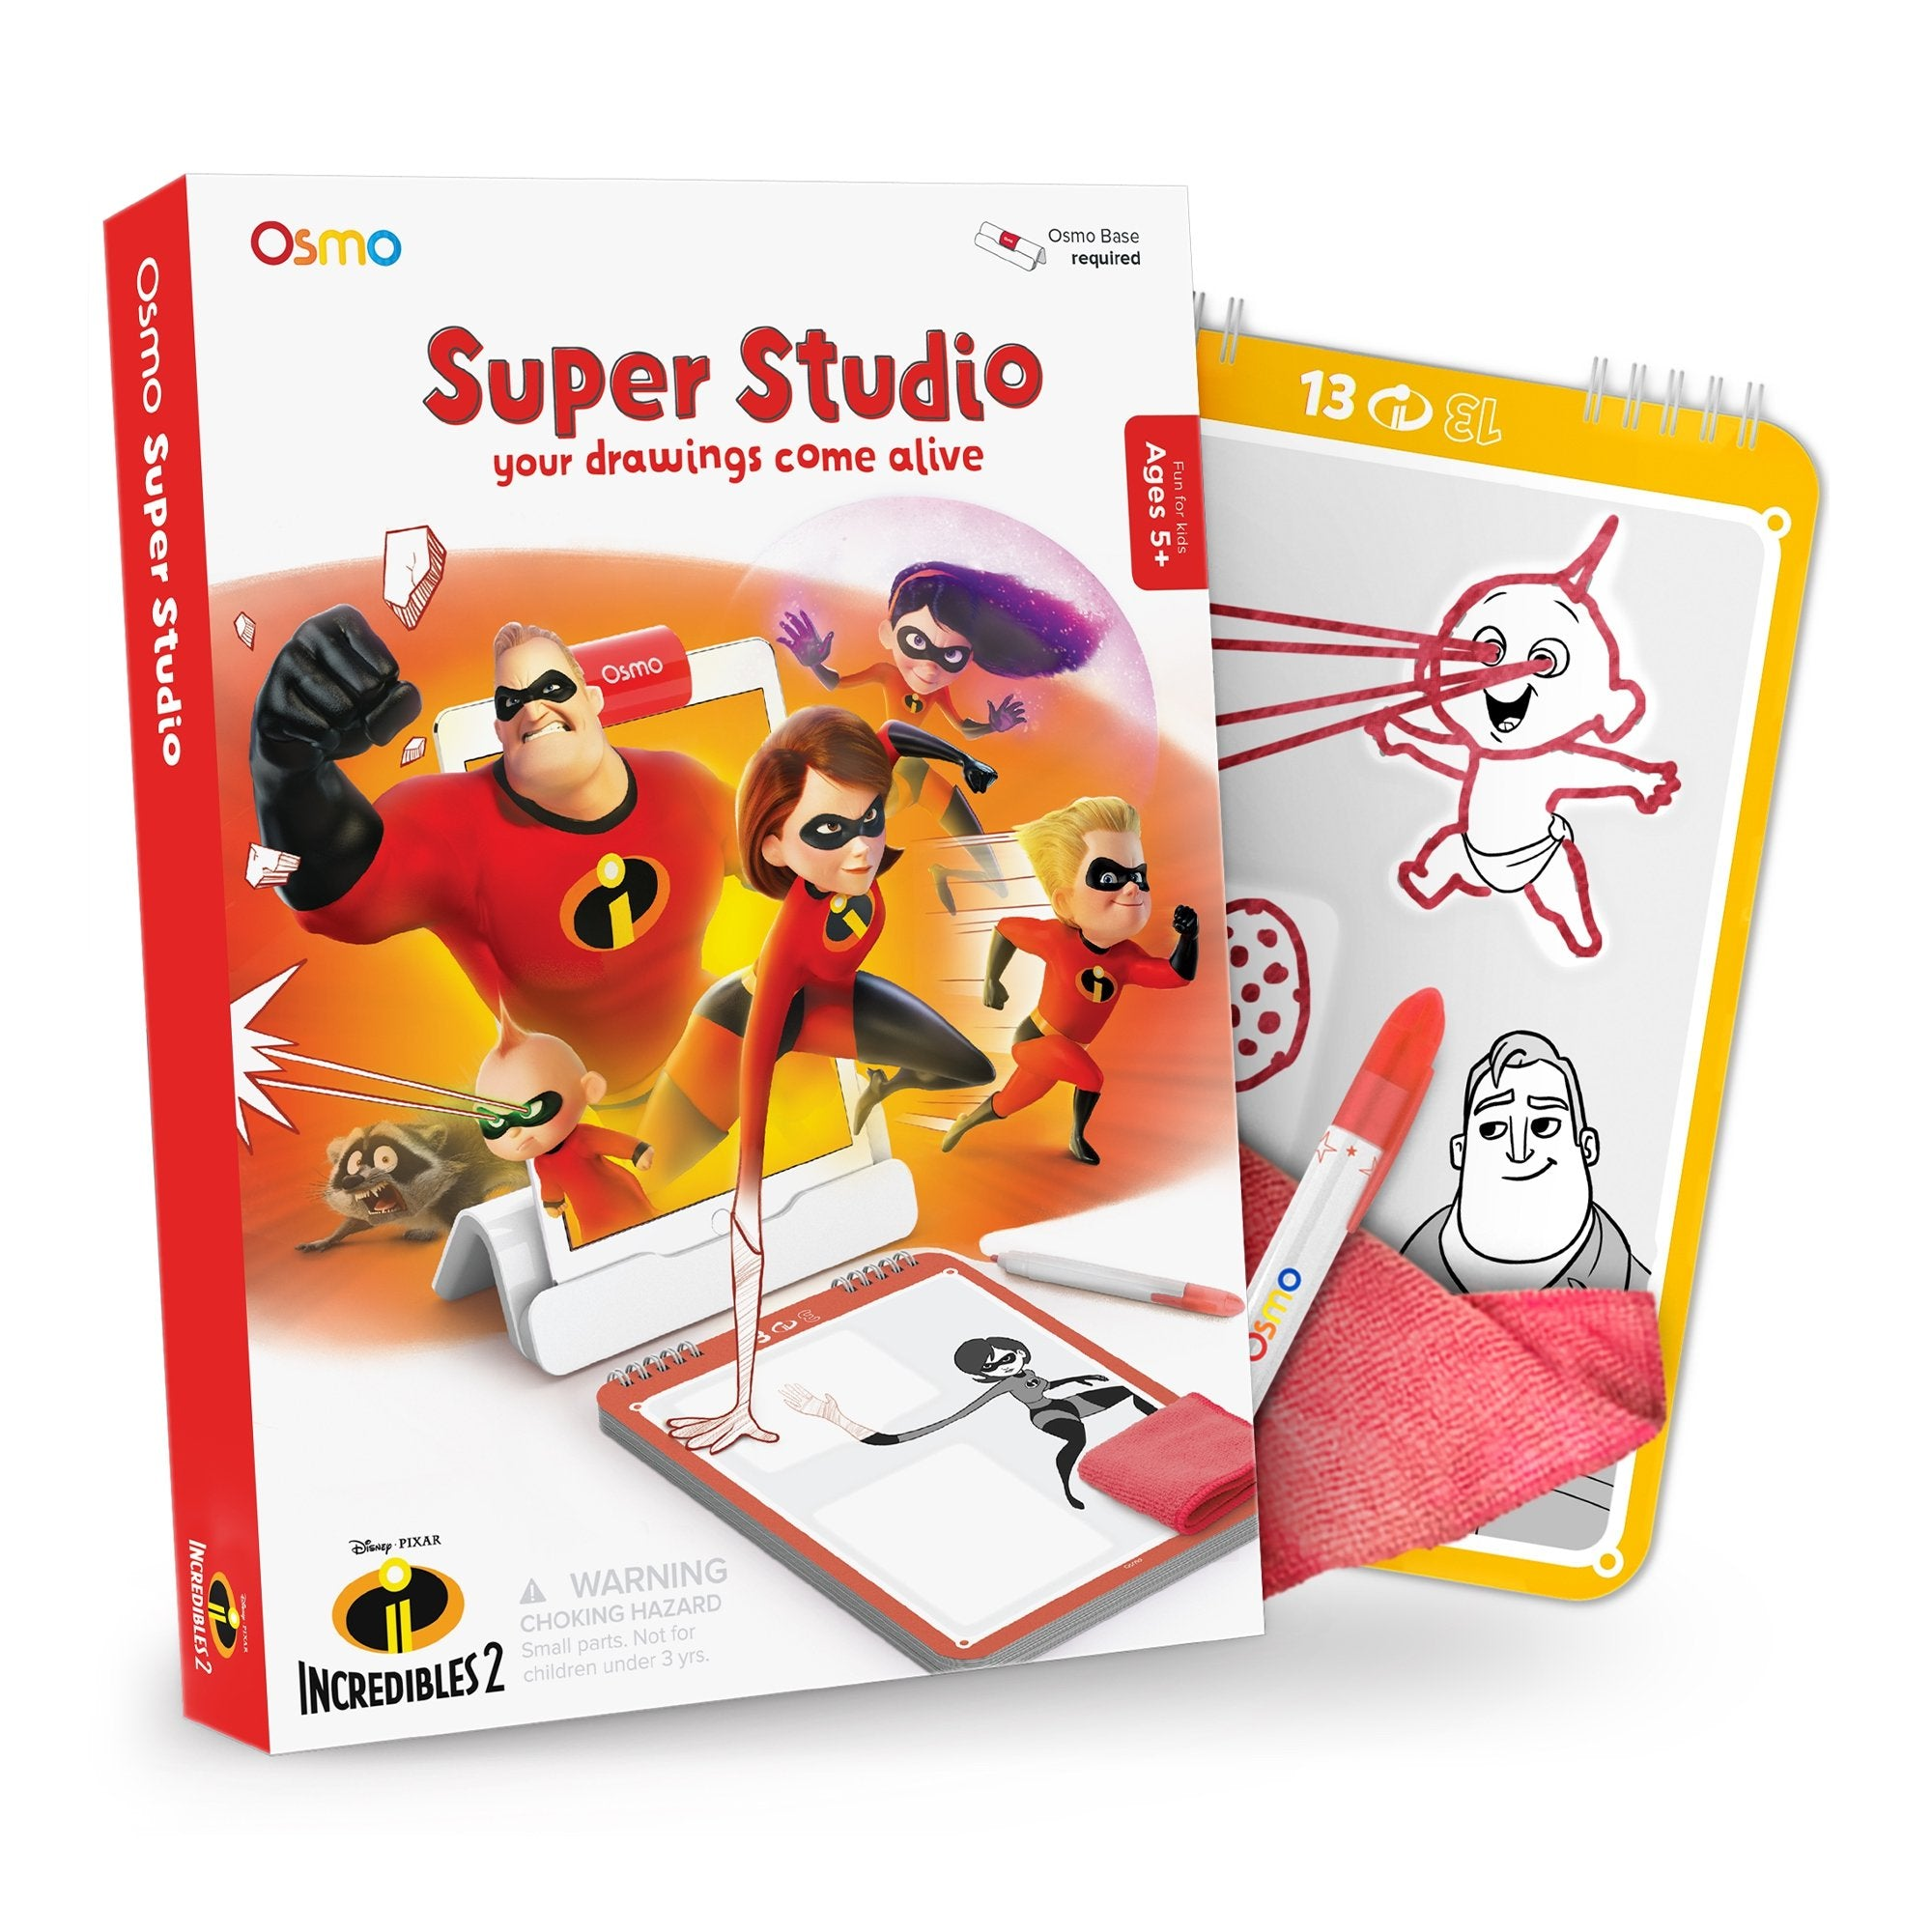 Osmo Super Studio Disney Pixar Incredibles 2 for Ages 5-11